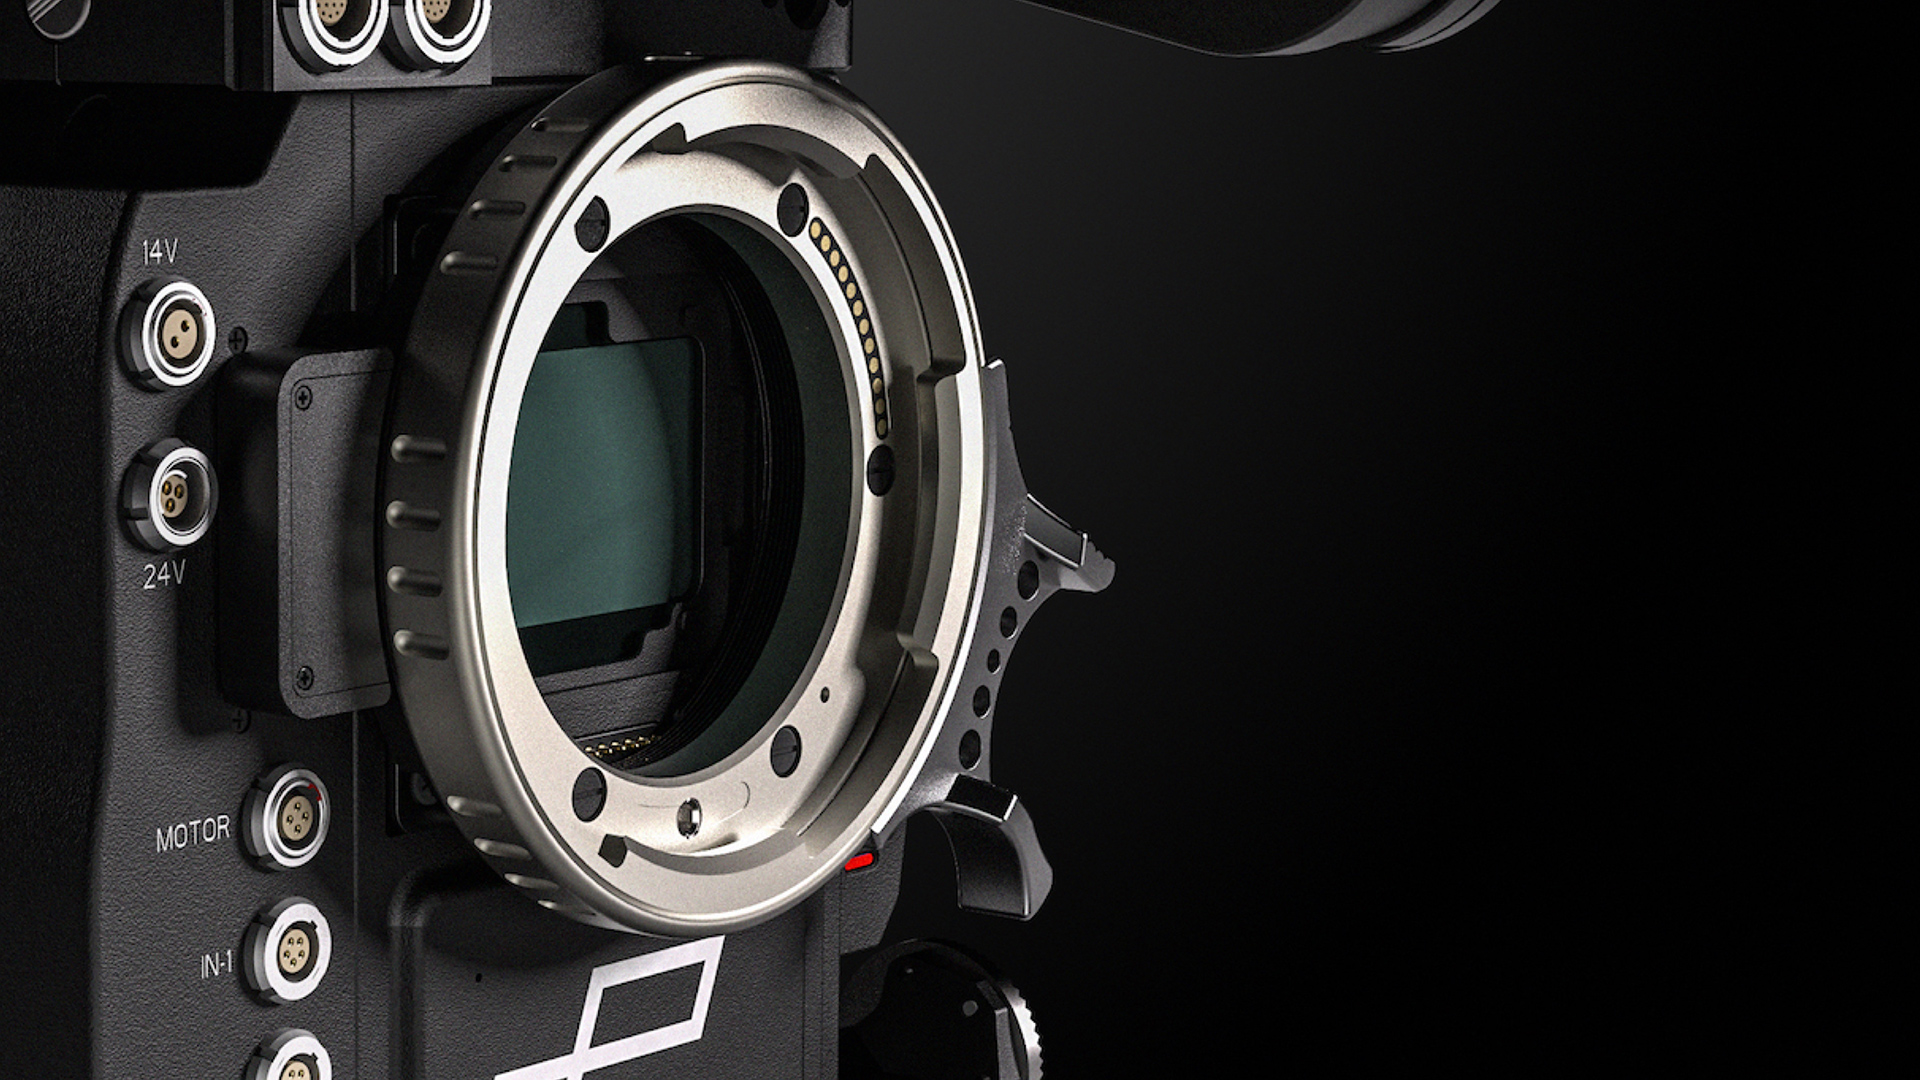 Panavision thinks it has a solution for end-to-end production workflow simplification